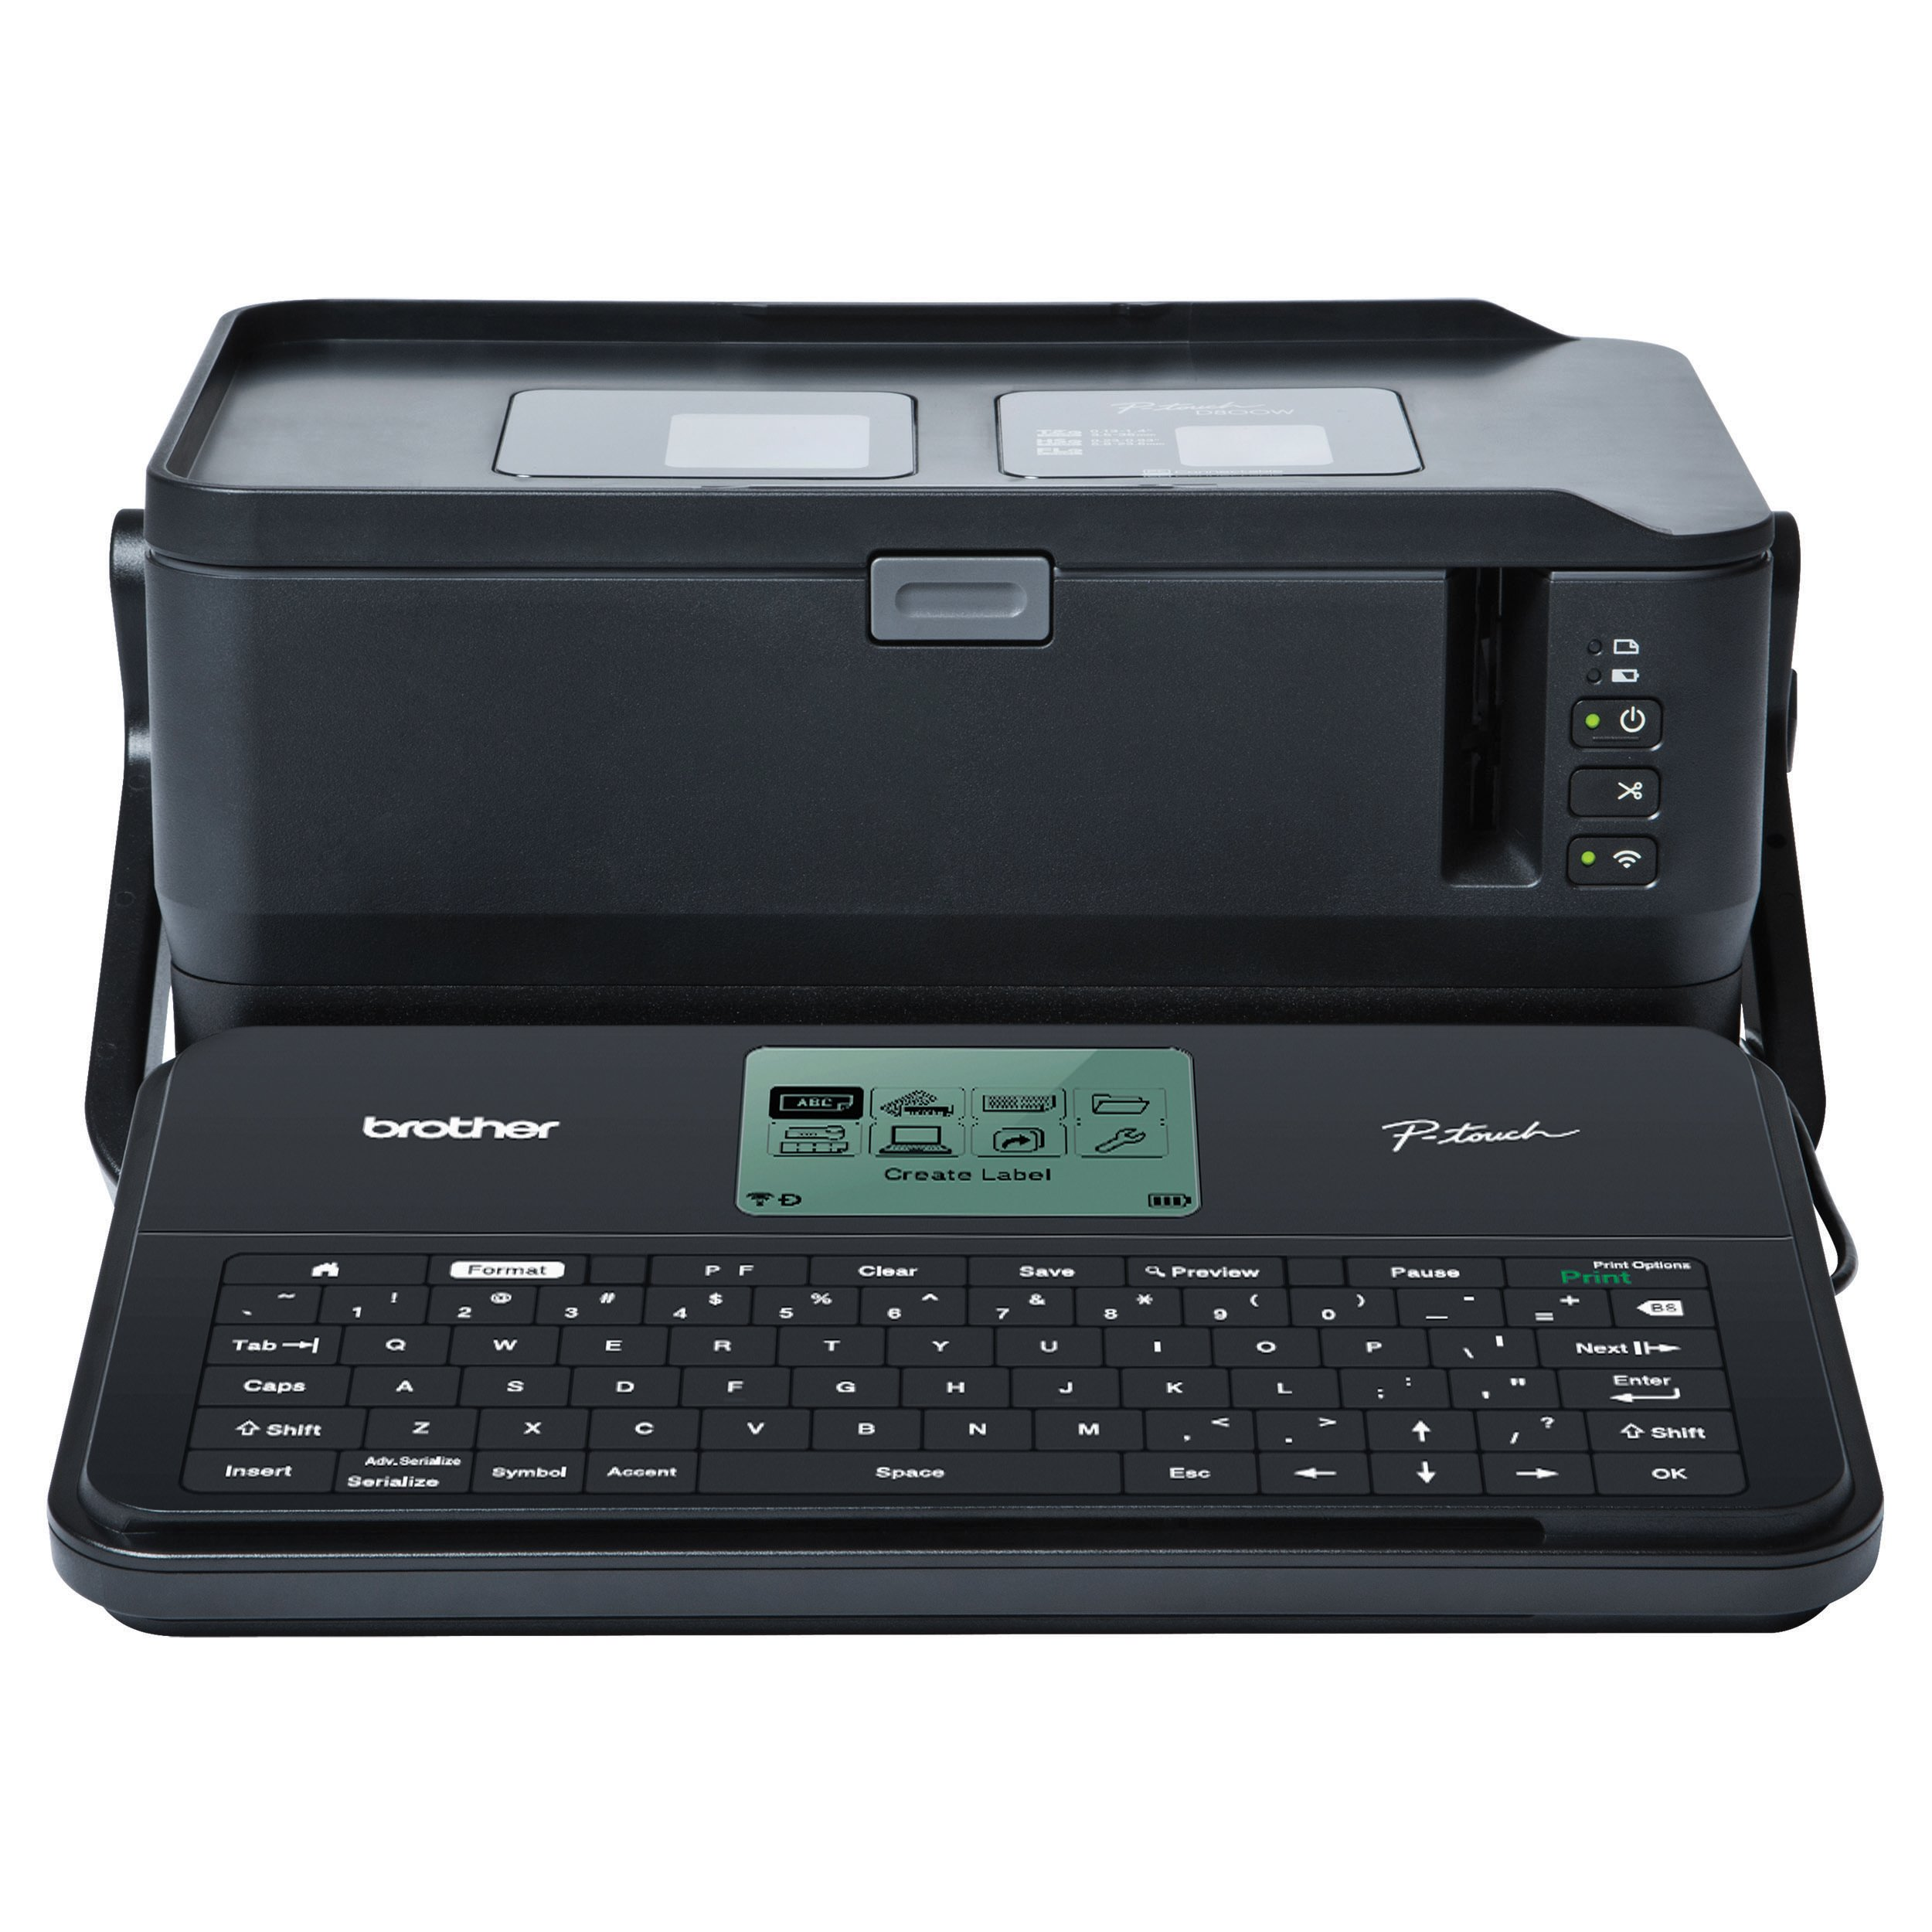 Brother Printer Portable, Industrial Electronic Label Maker (PTD800W)